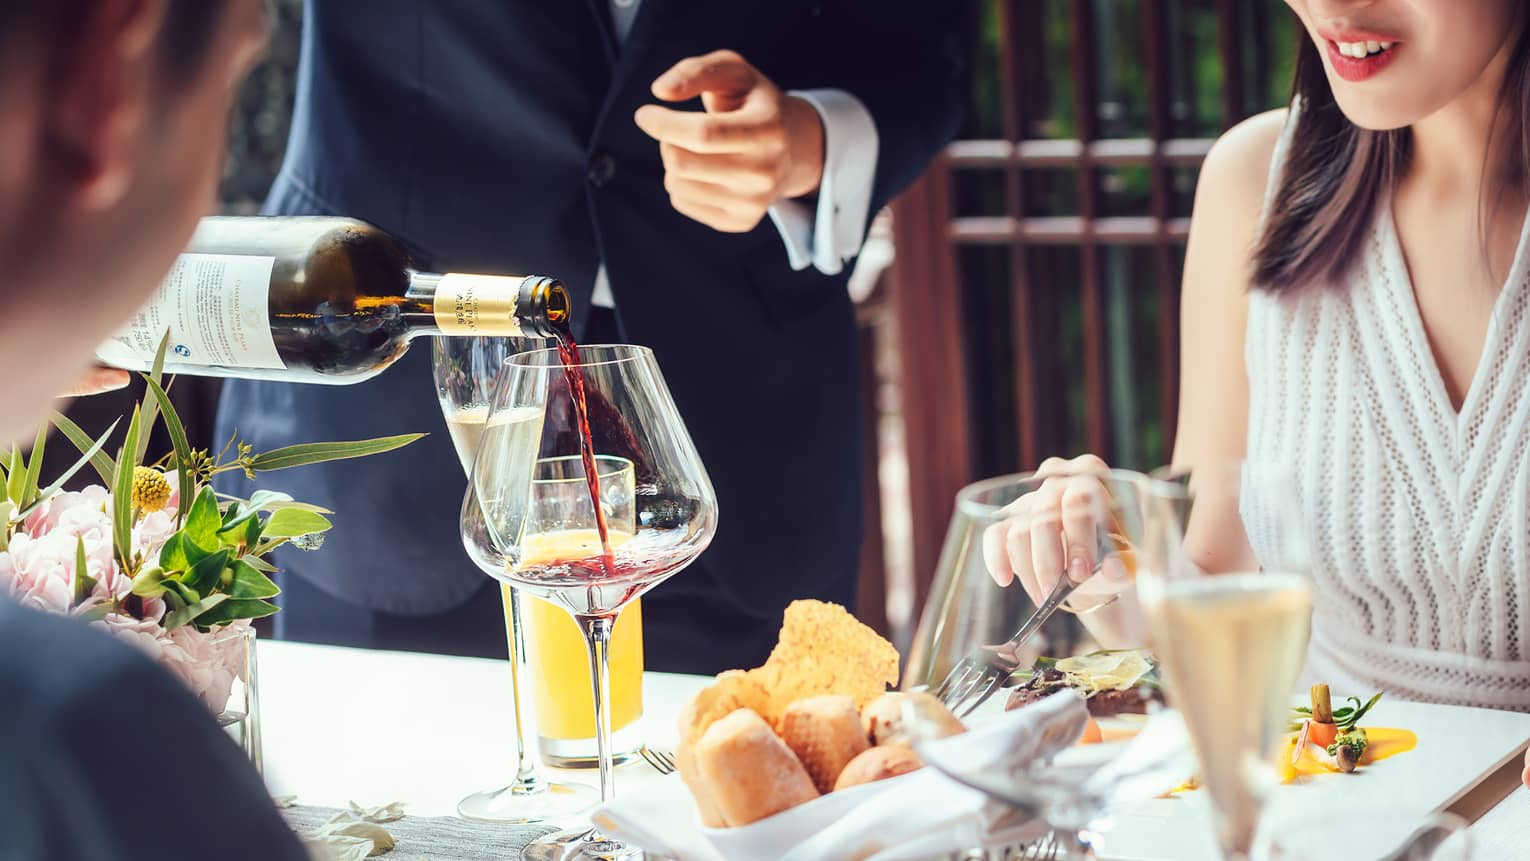 Server pouring red wine into large glass as couple dines at table